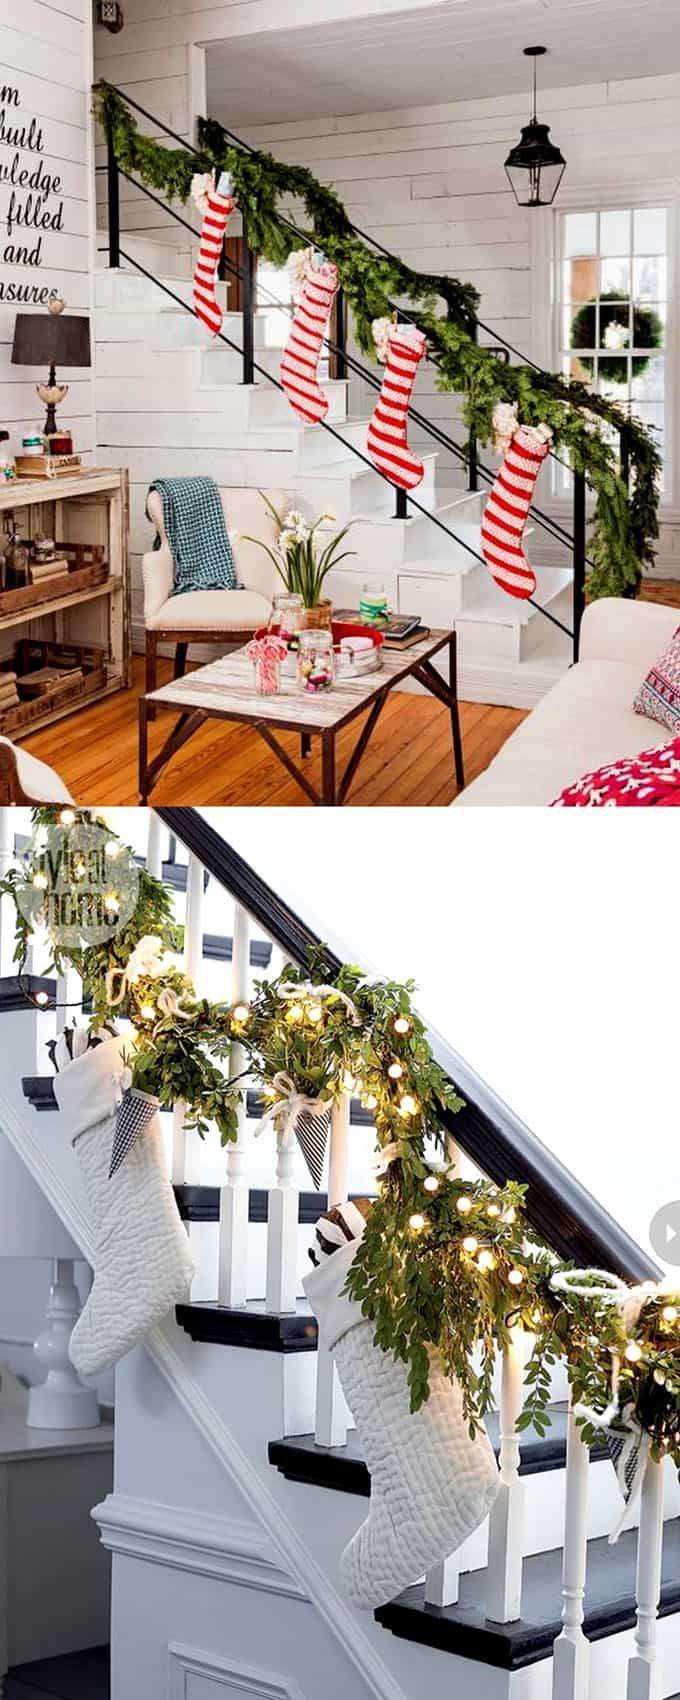 Christmas staircase: 100+ Favorite Christmas decorating ideas & DIY Christmas decorations for every room, from the best Christmas home tours! Lots of great tips to apply to your own home easily! A Piece of Rainbow